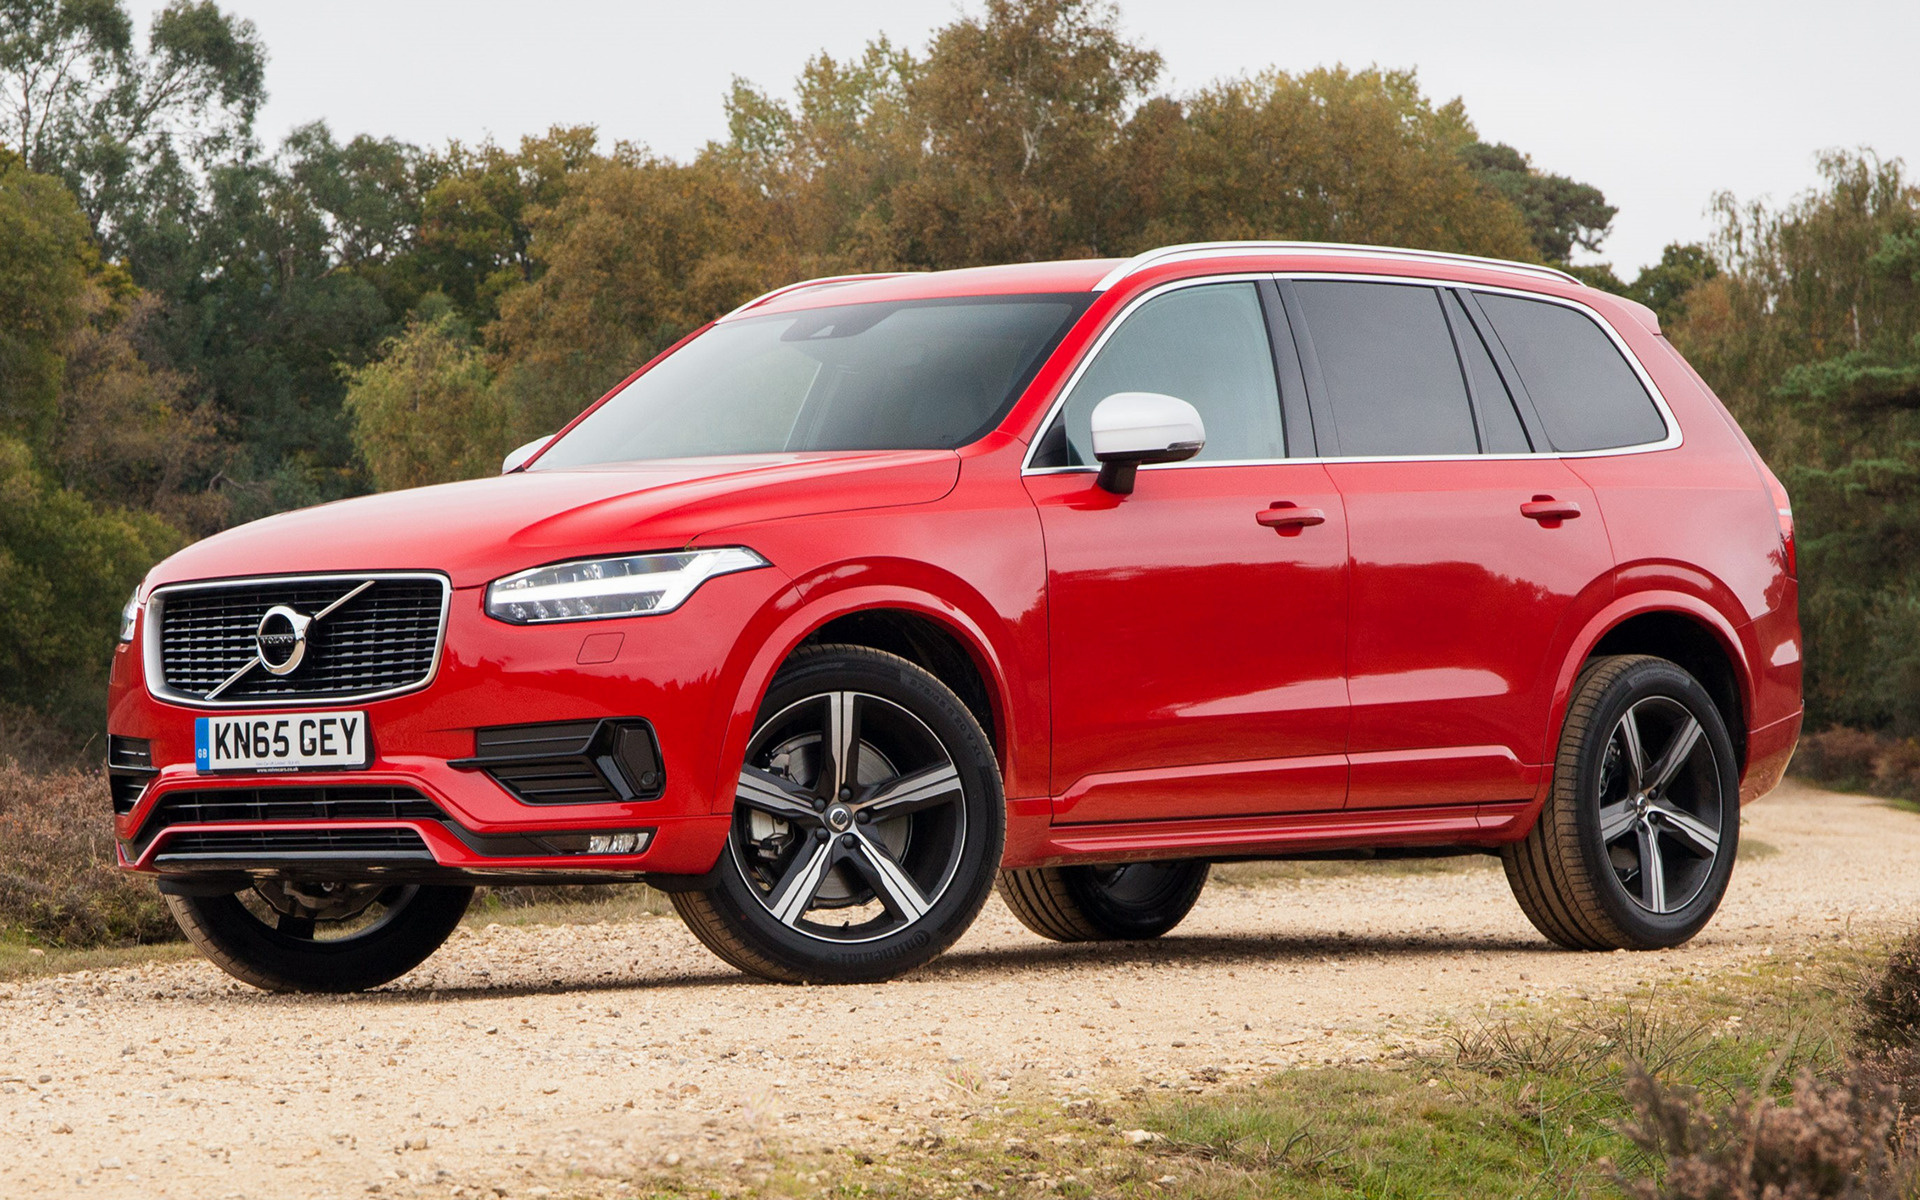 Jaguar Cars Images In Hd Wallpapers Volvo Xc90 R Design 2015 Uk Wallpapers And Hd Images